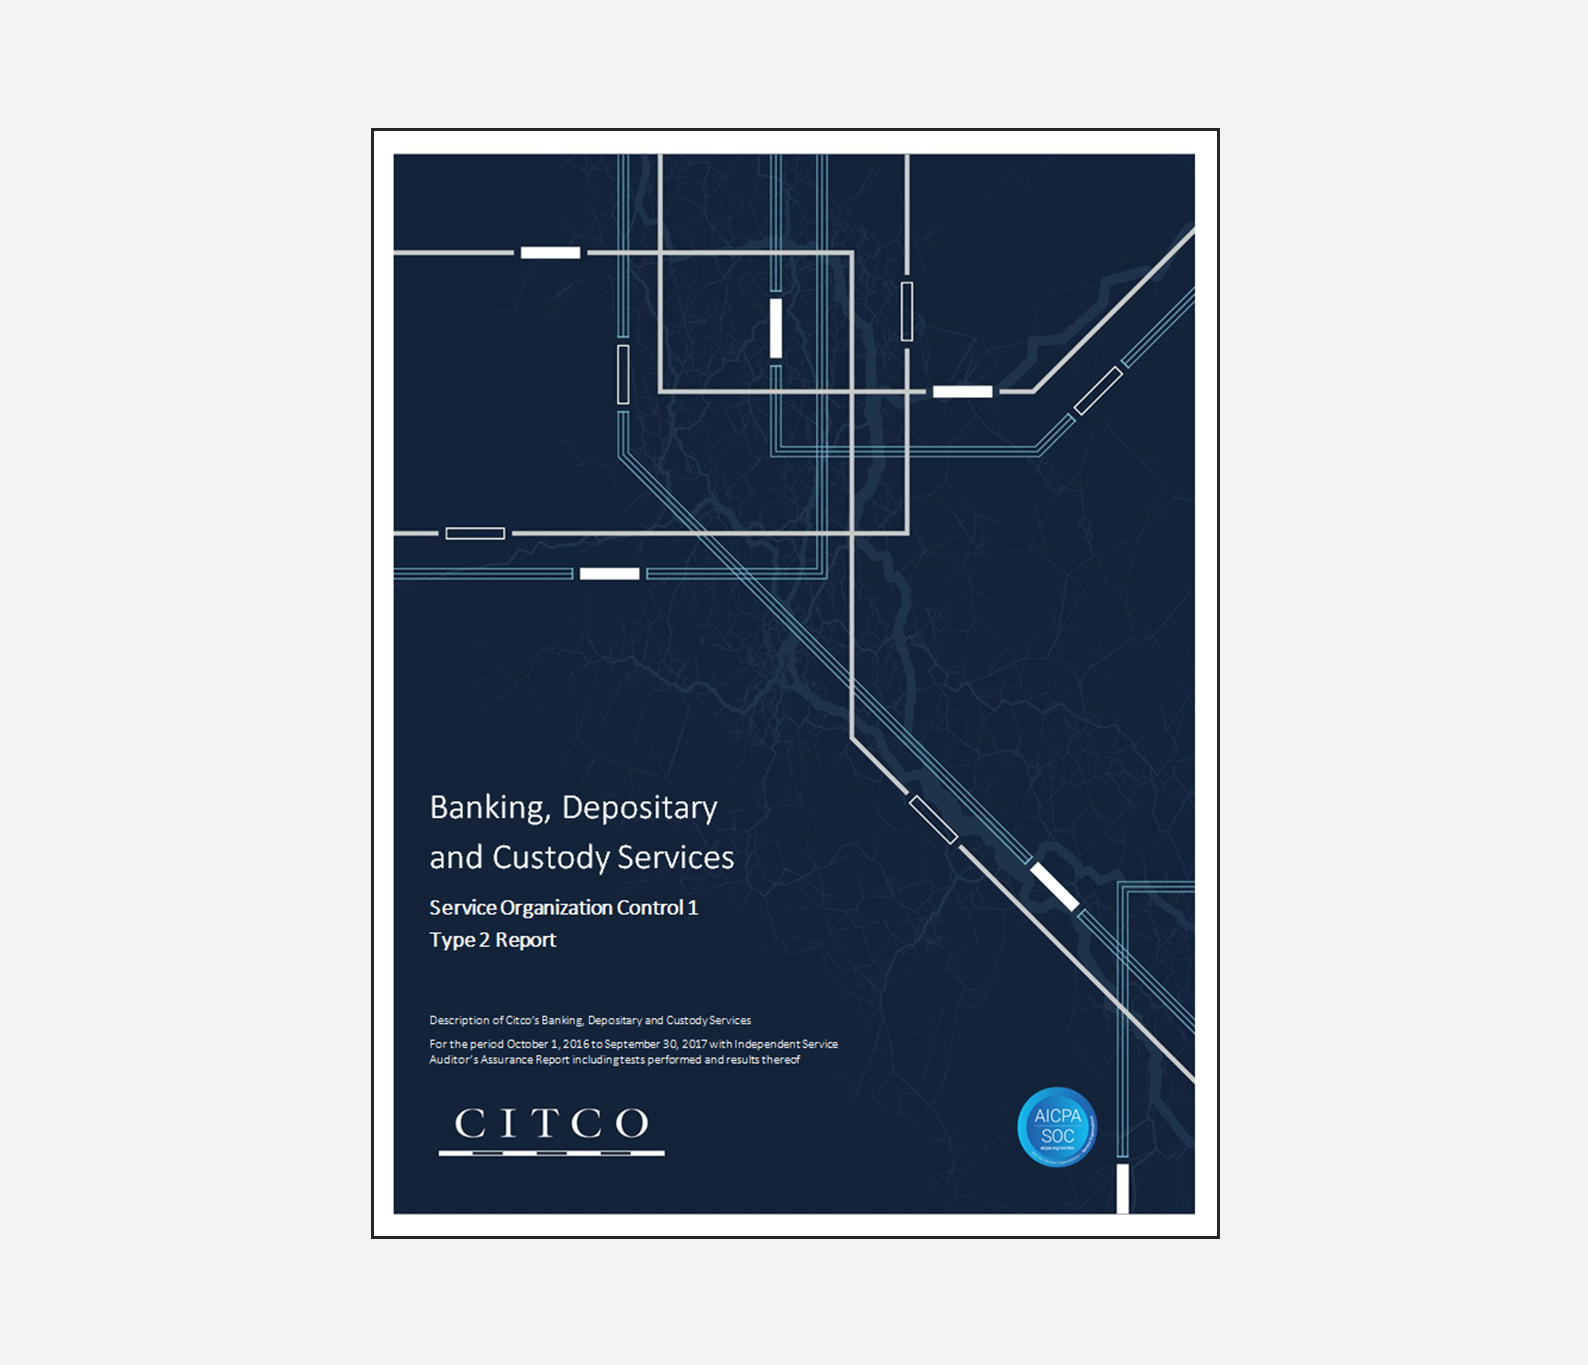 Citco announces completion of the Banking, Depositary and Custody Services SOC 1 report for the 7th consecutive year